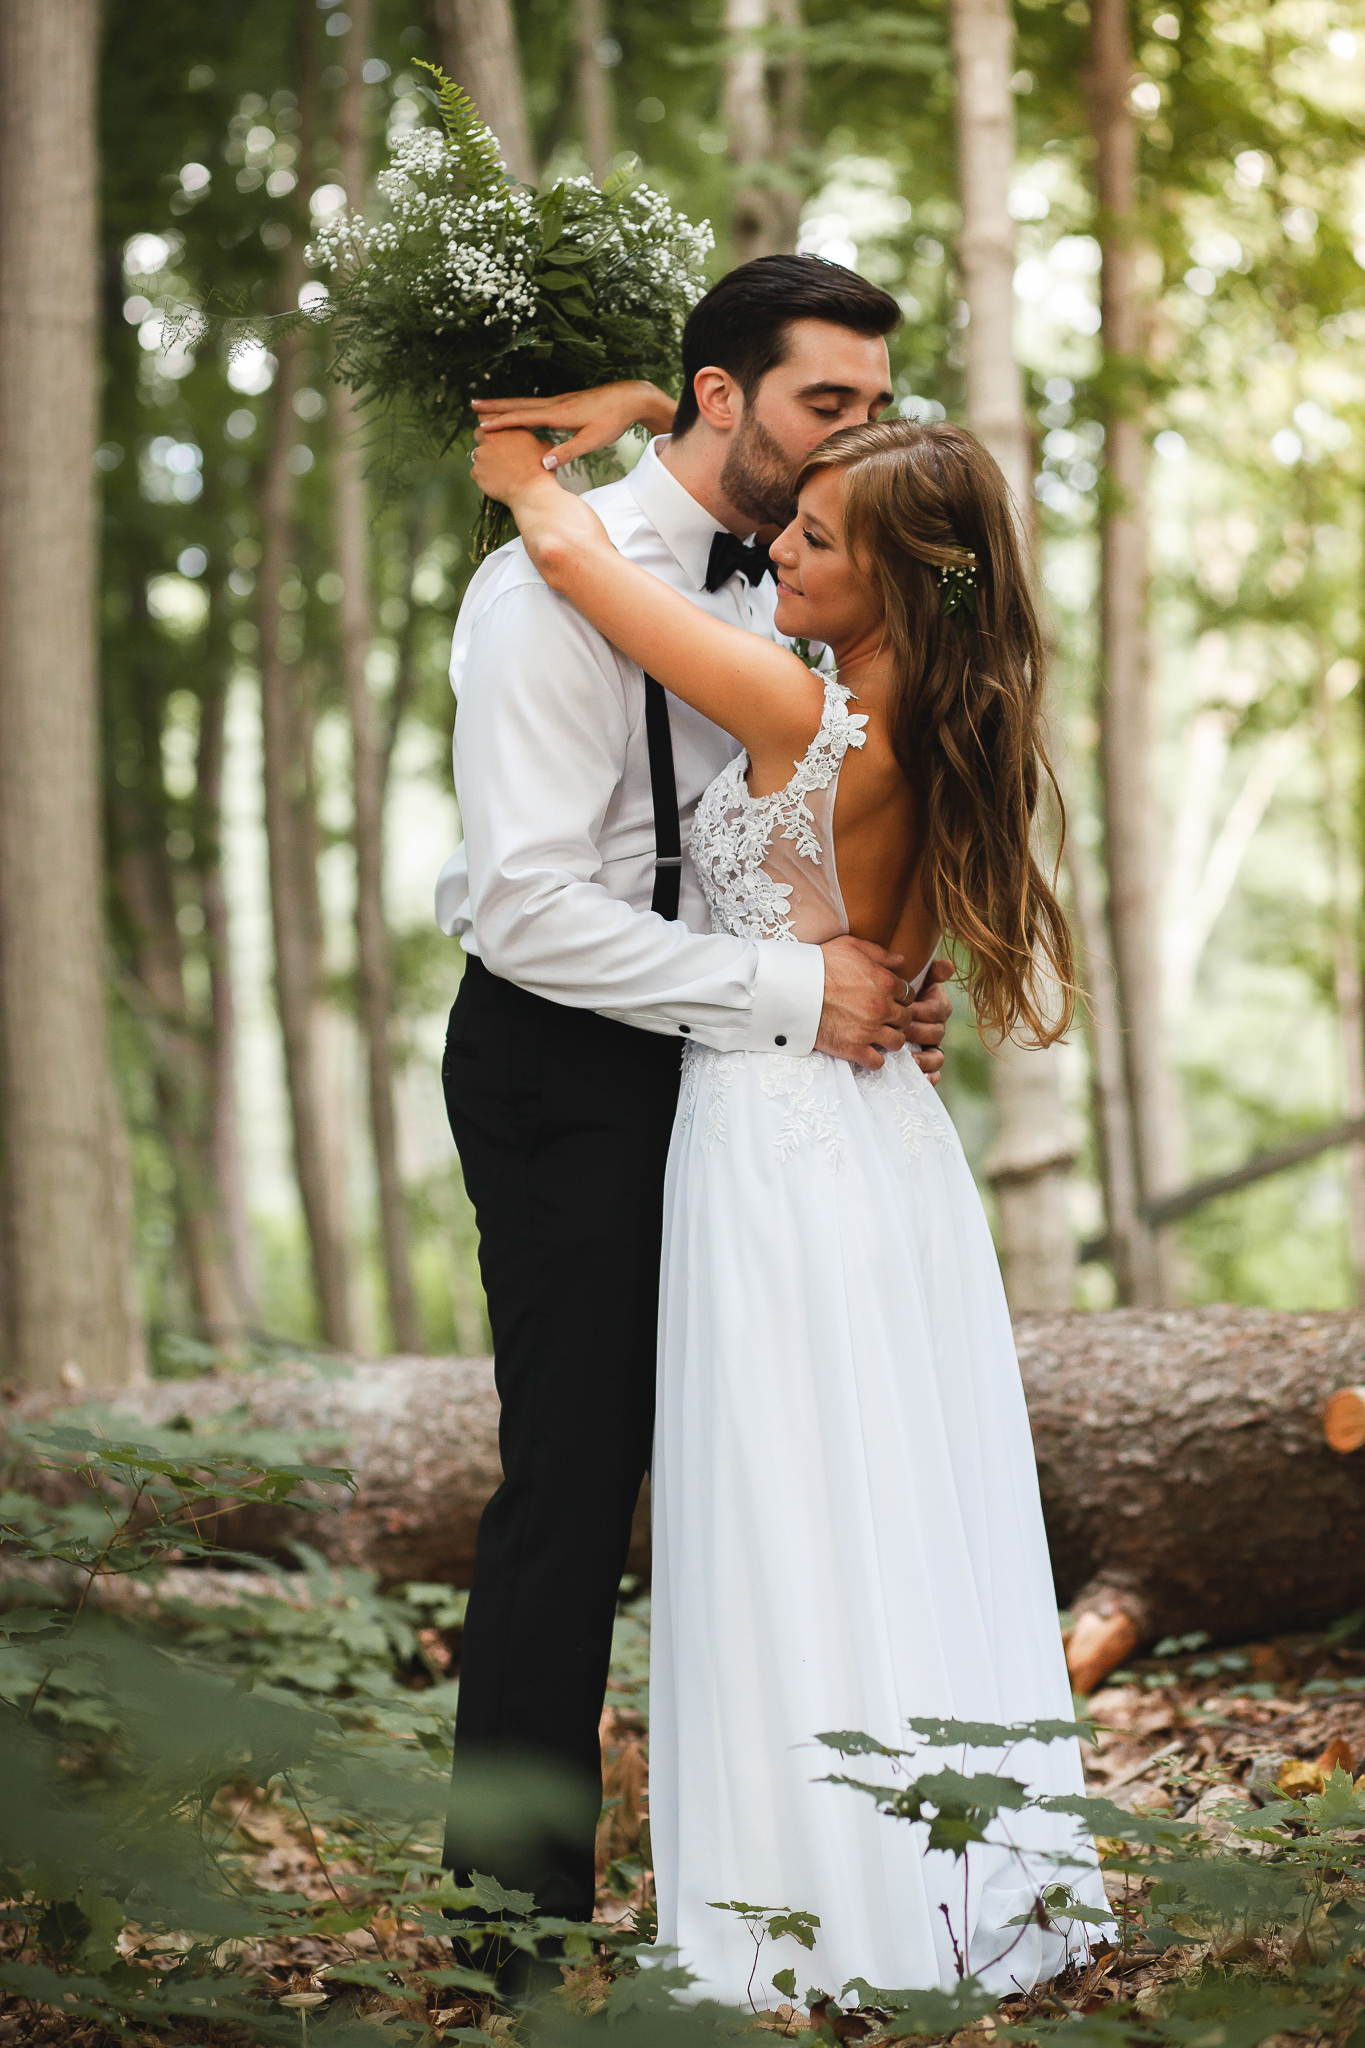 Amy D Photography- Bride and Groom- Wedding Poses- Muskoka Wedding- Barrie Wedding Photographer- Best Wedding Photographer- Muskoka Wedding Photography- Bride Pose- Groom Pose-53.jpg